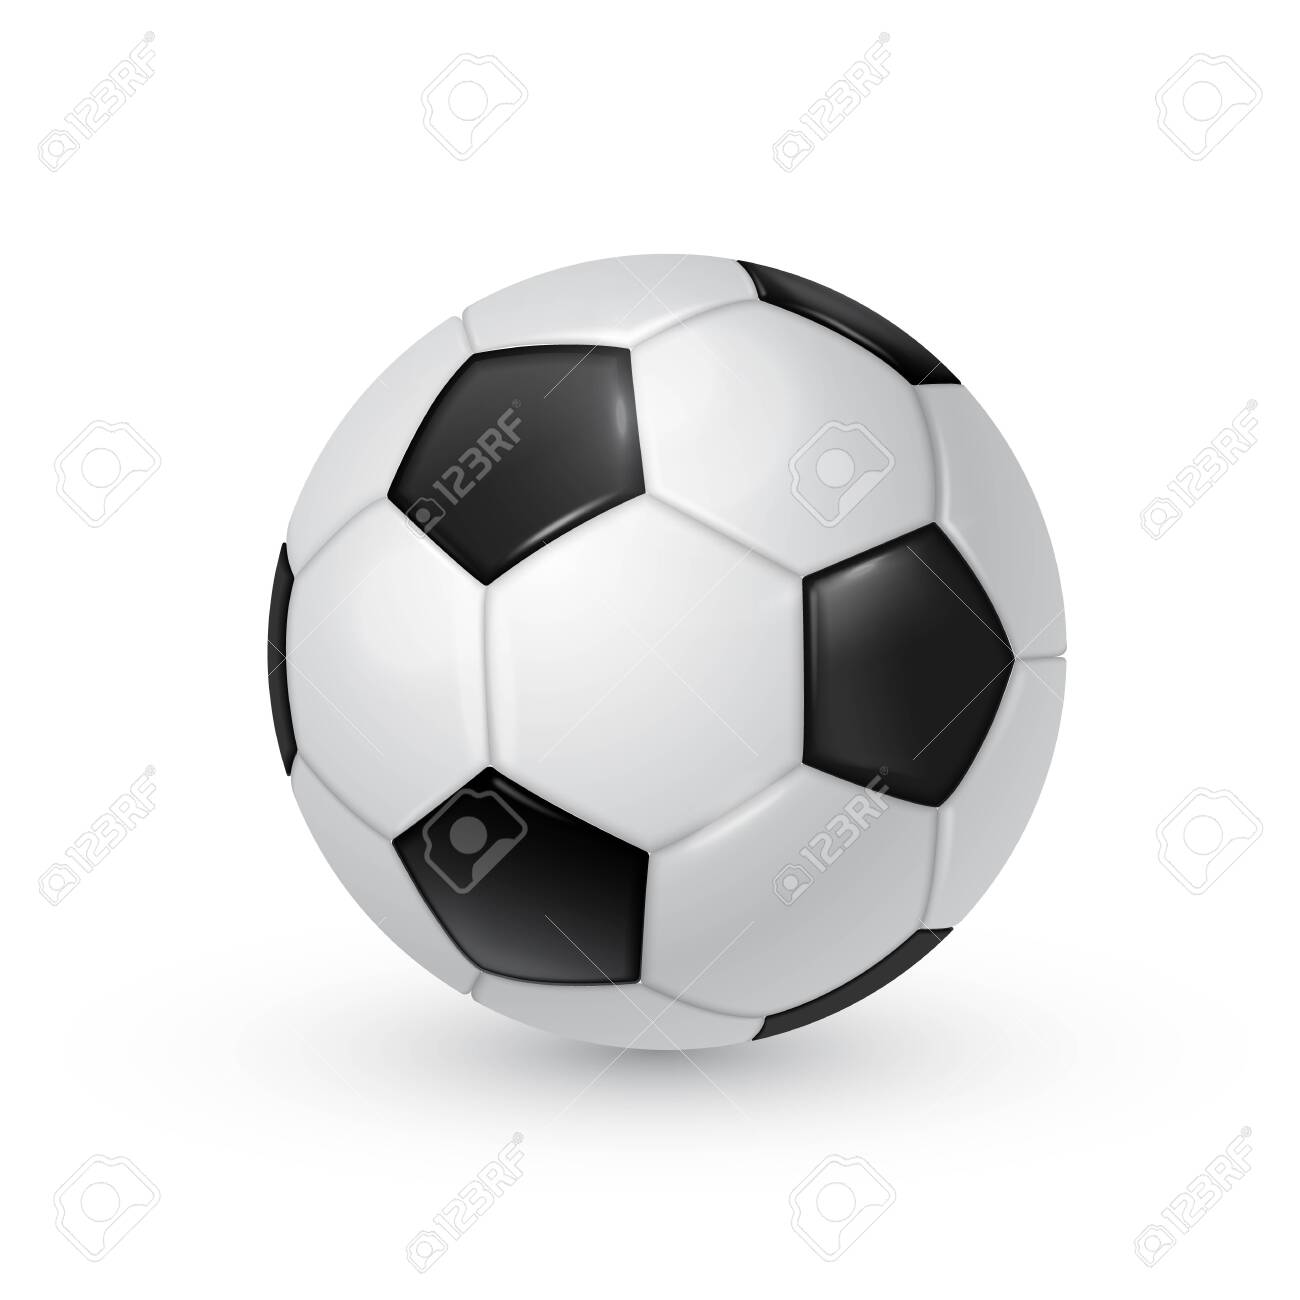 Soccer ball realistic vector illustration isolated on white background. - 143736571